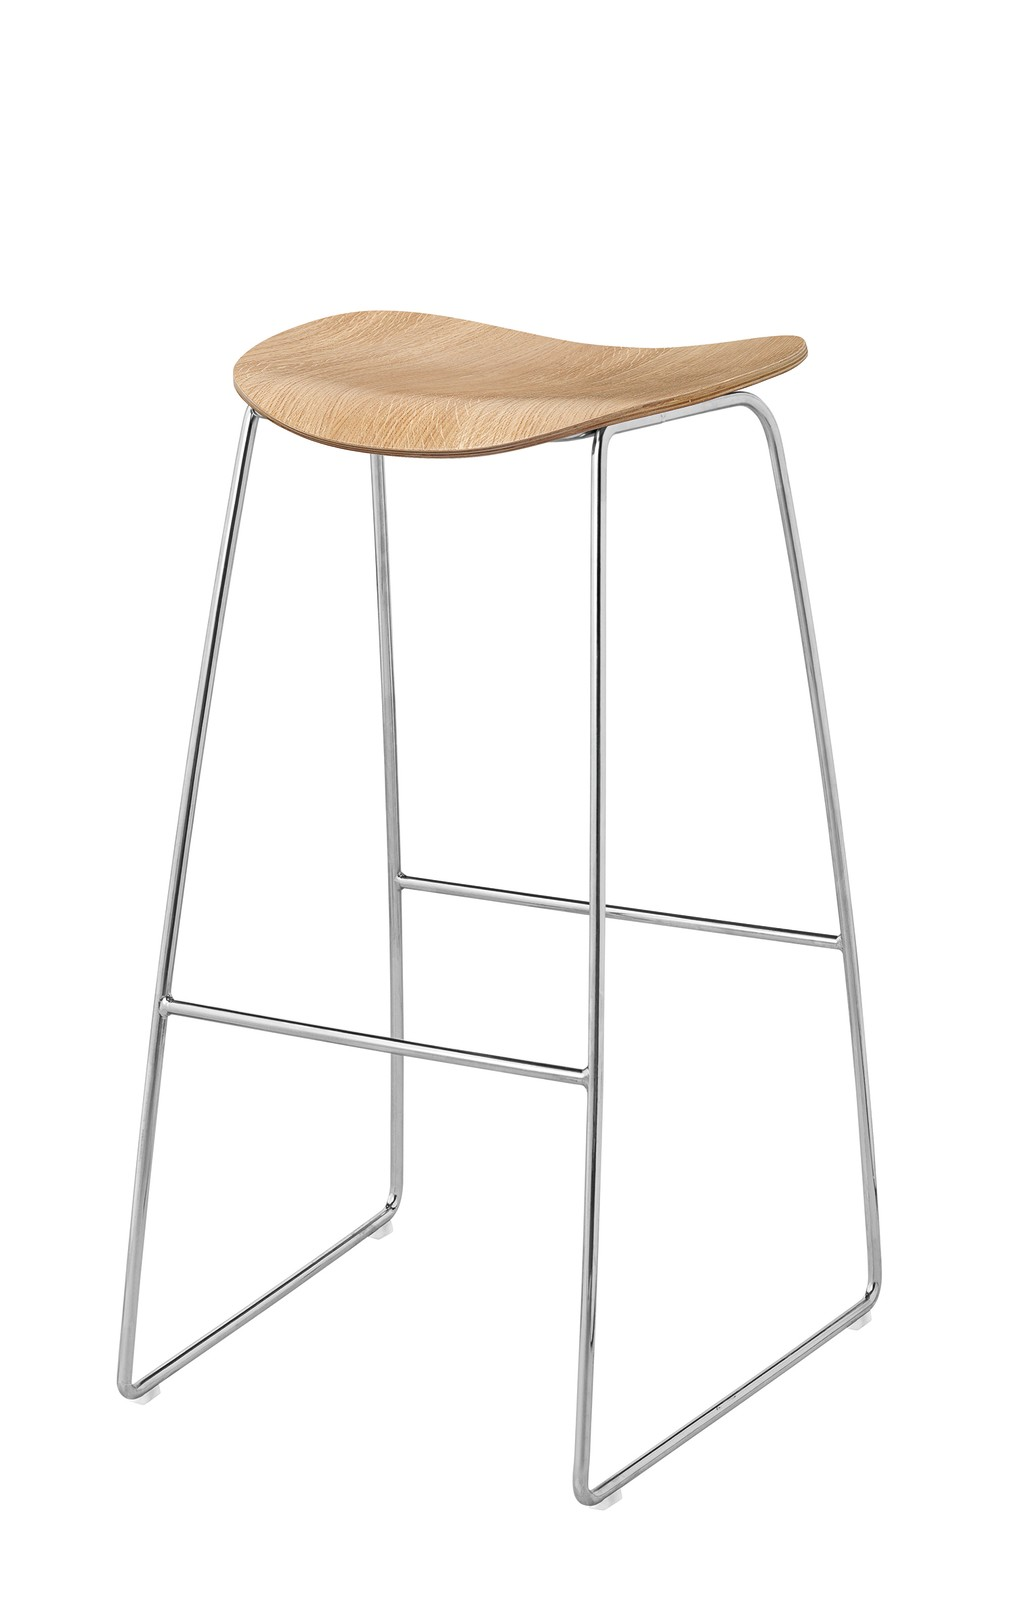 2D Bar Stool - Un-Upholstered, Sledge Base Gubi Wood Oak, Gubi Metal Chrome, Felt Glides